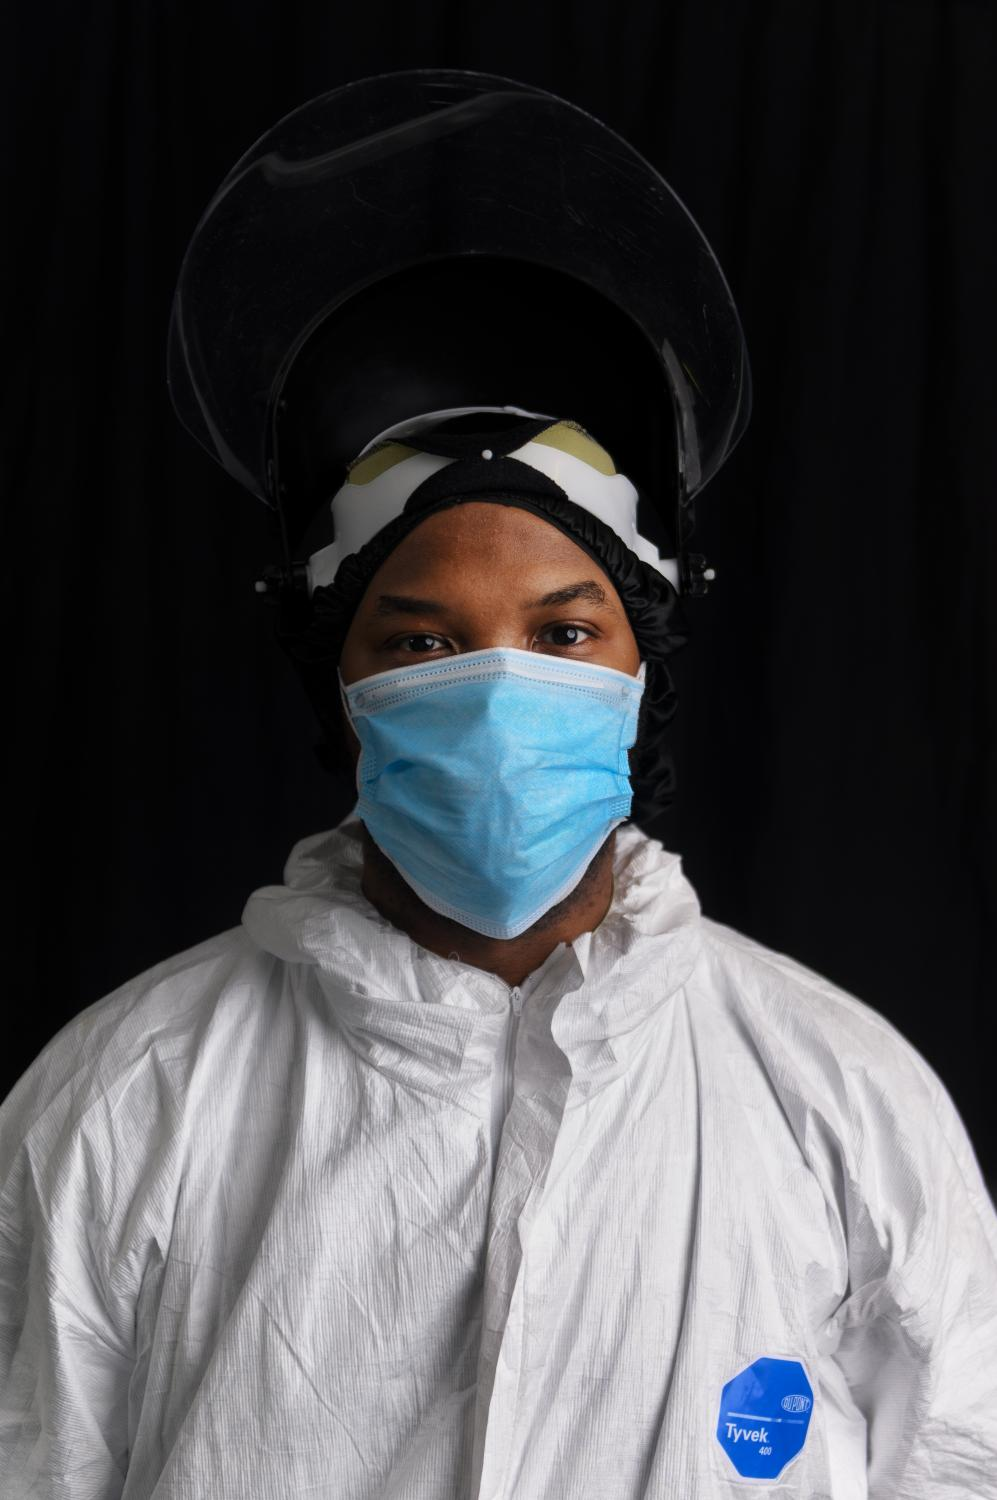 Shawn McArthur, 31, from Staten Island, NY poses for a portrait inside the COVID unit at Clove Lakes Nursing Home in Staten Island, NY where he works as a ceertified nursing assistant.